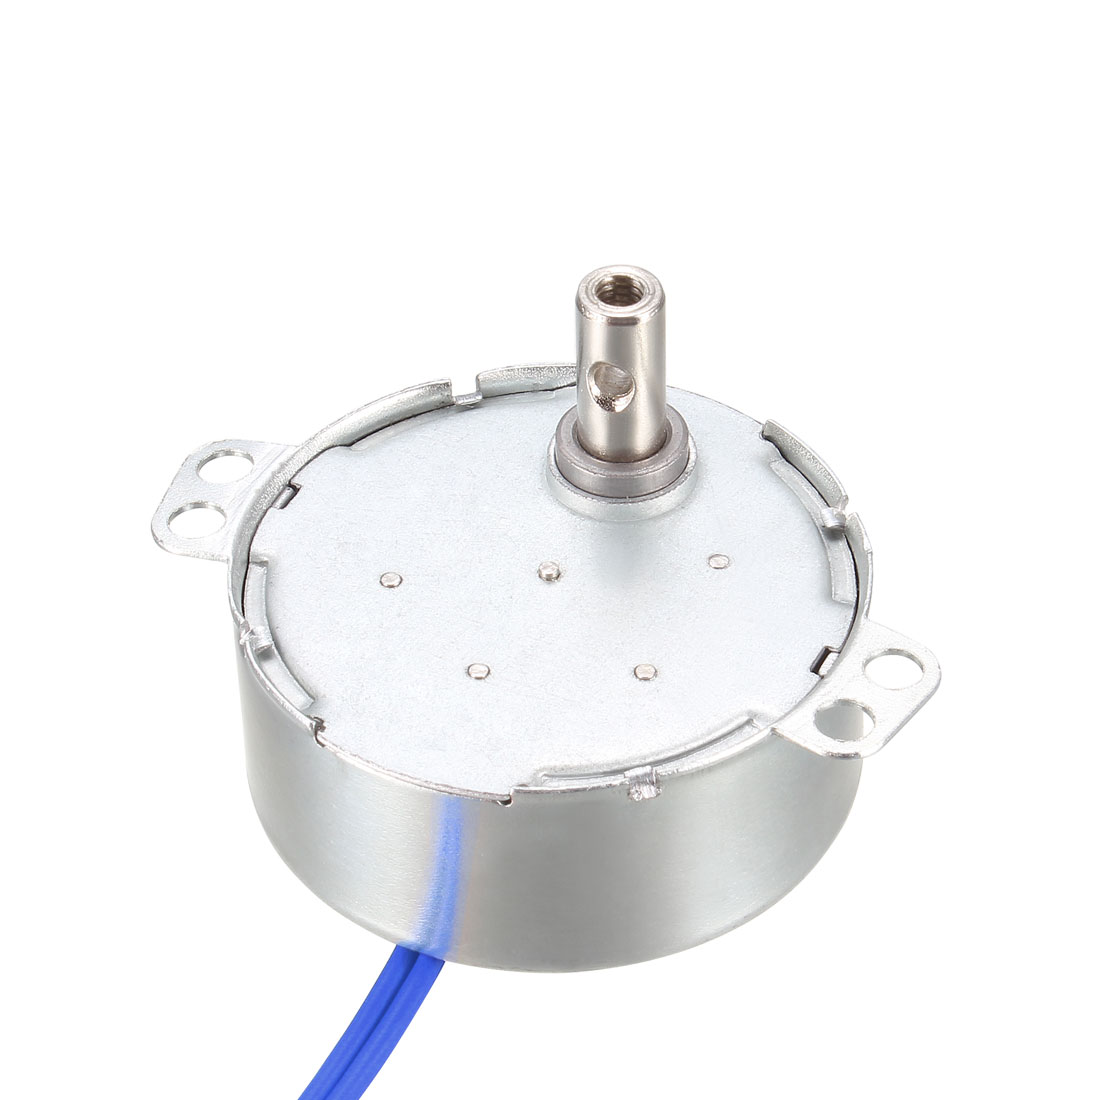 Electric Synchronous Motor Turntable Motor 100-127 VAC 50-60Hz CCW/CW 4W 9-11RPM